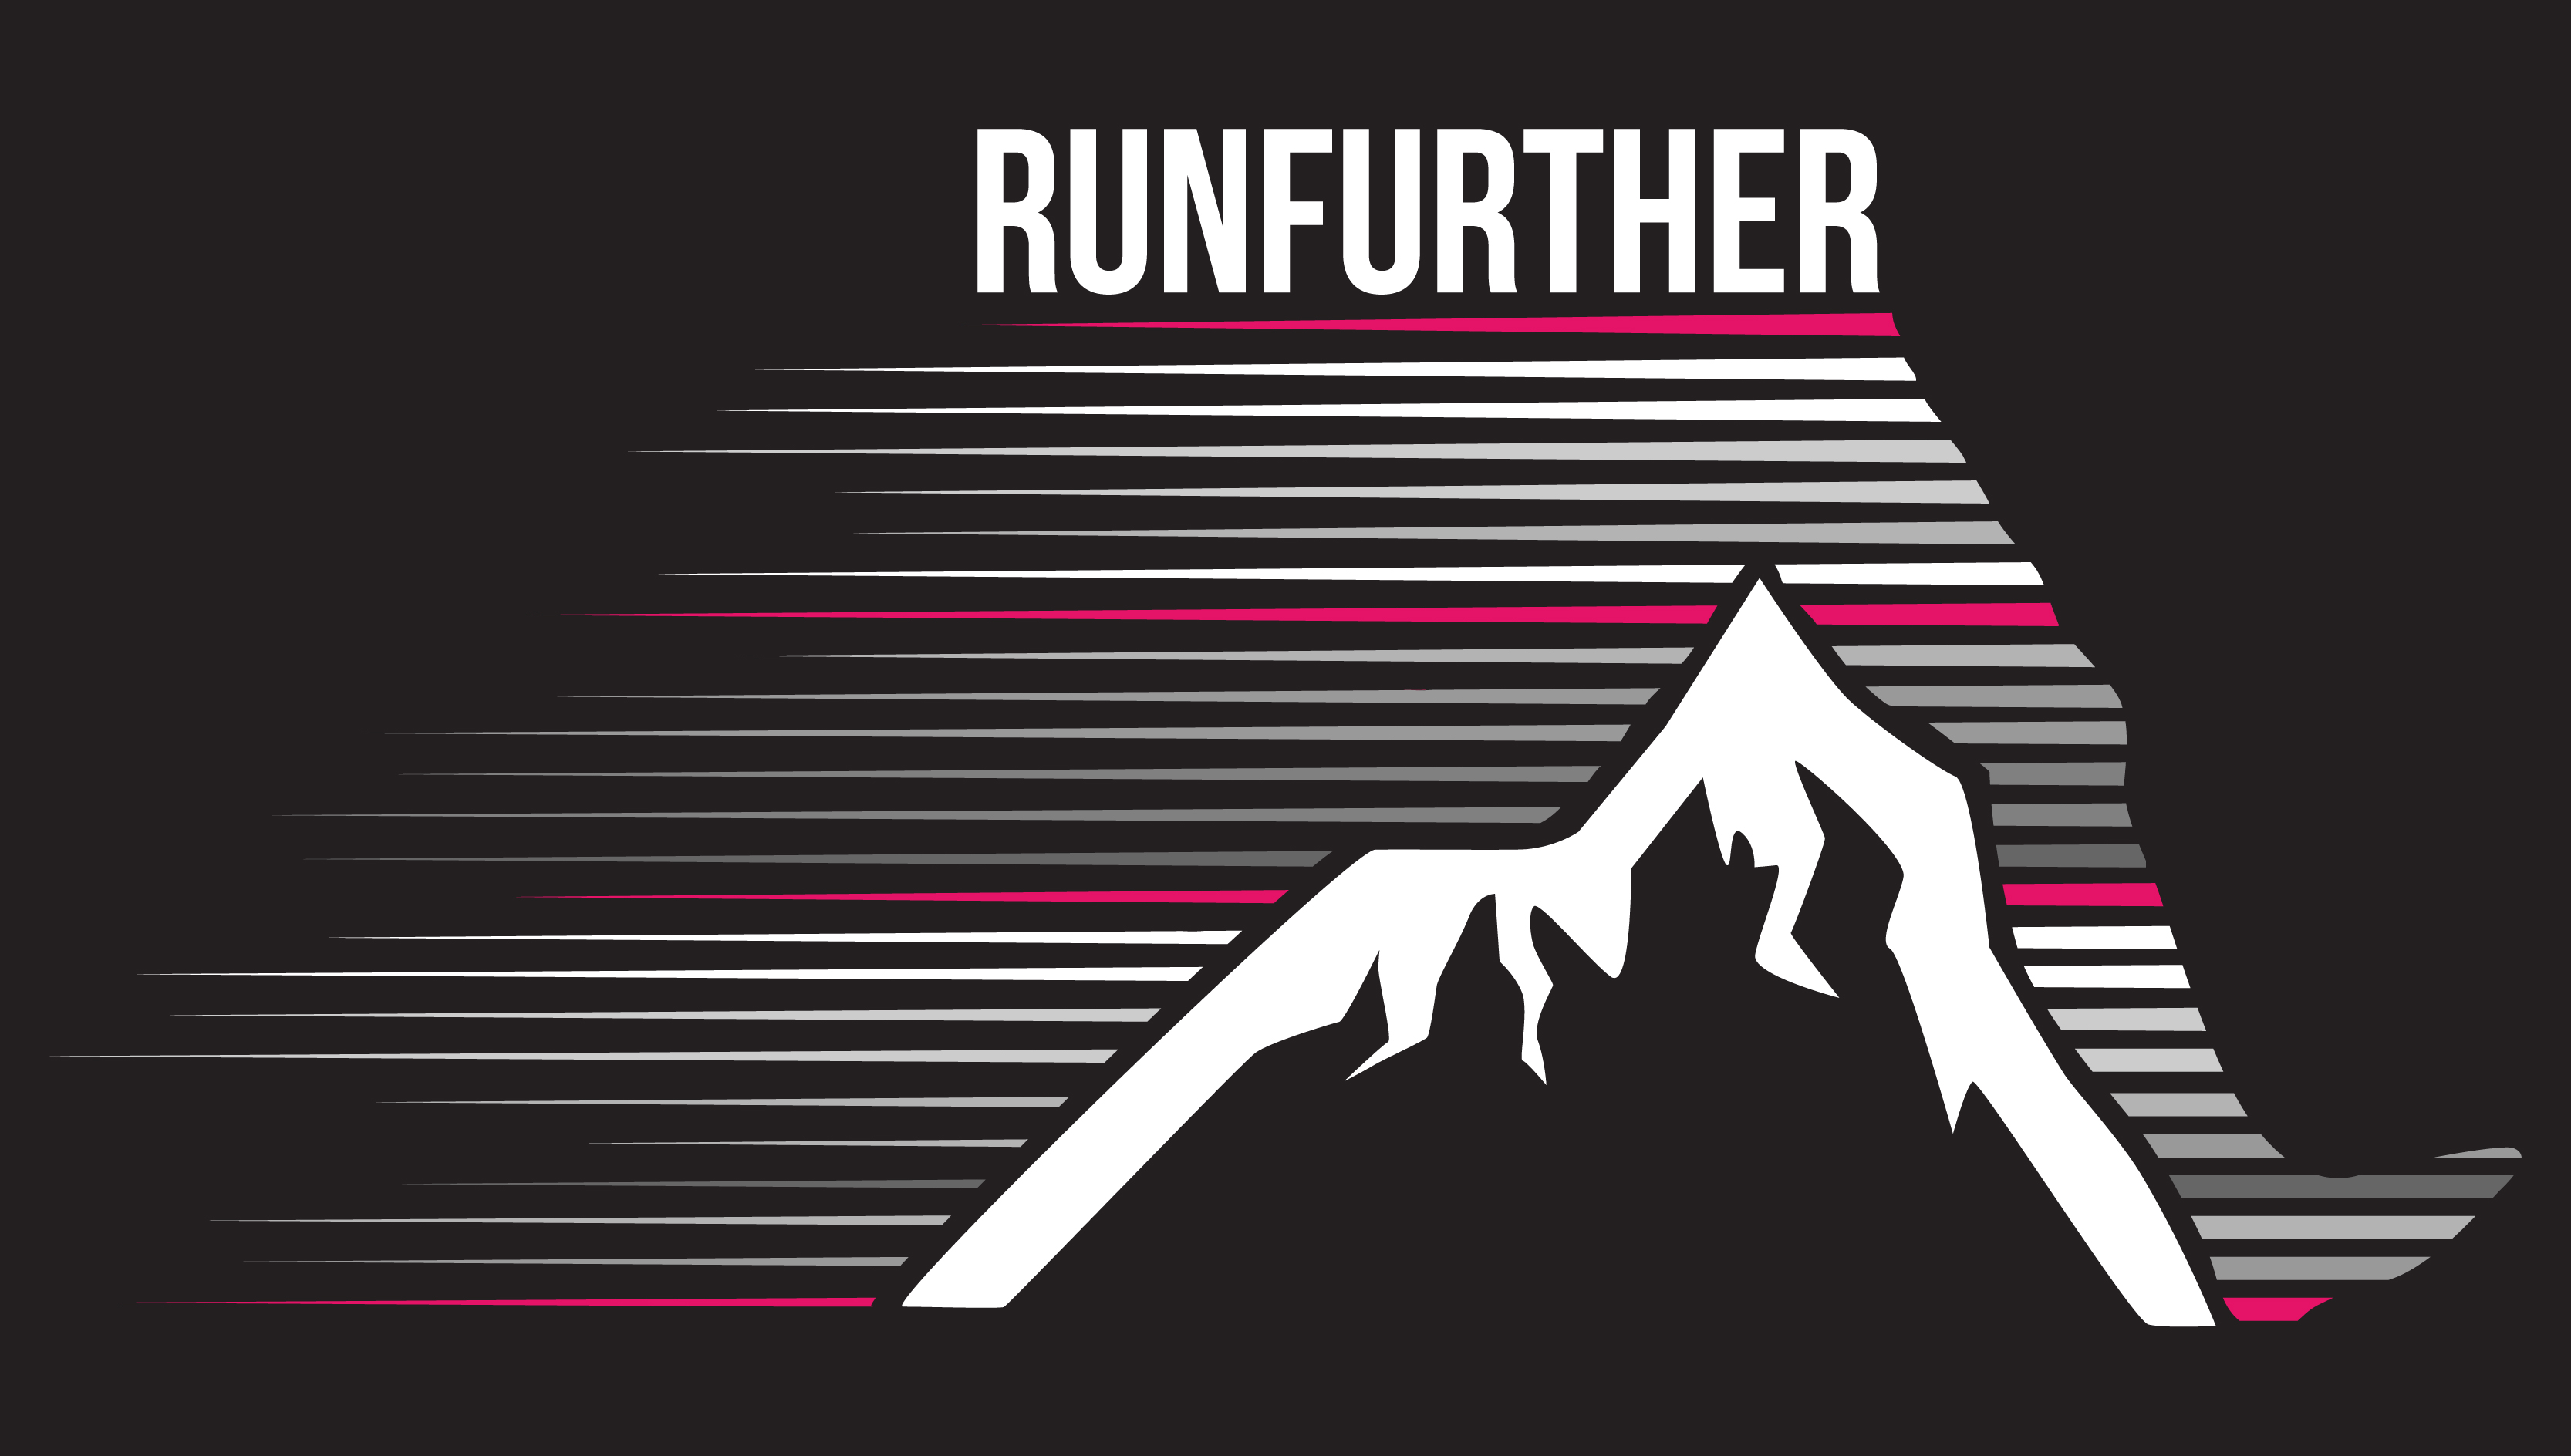 runfurther